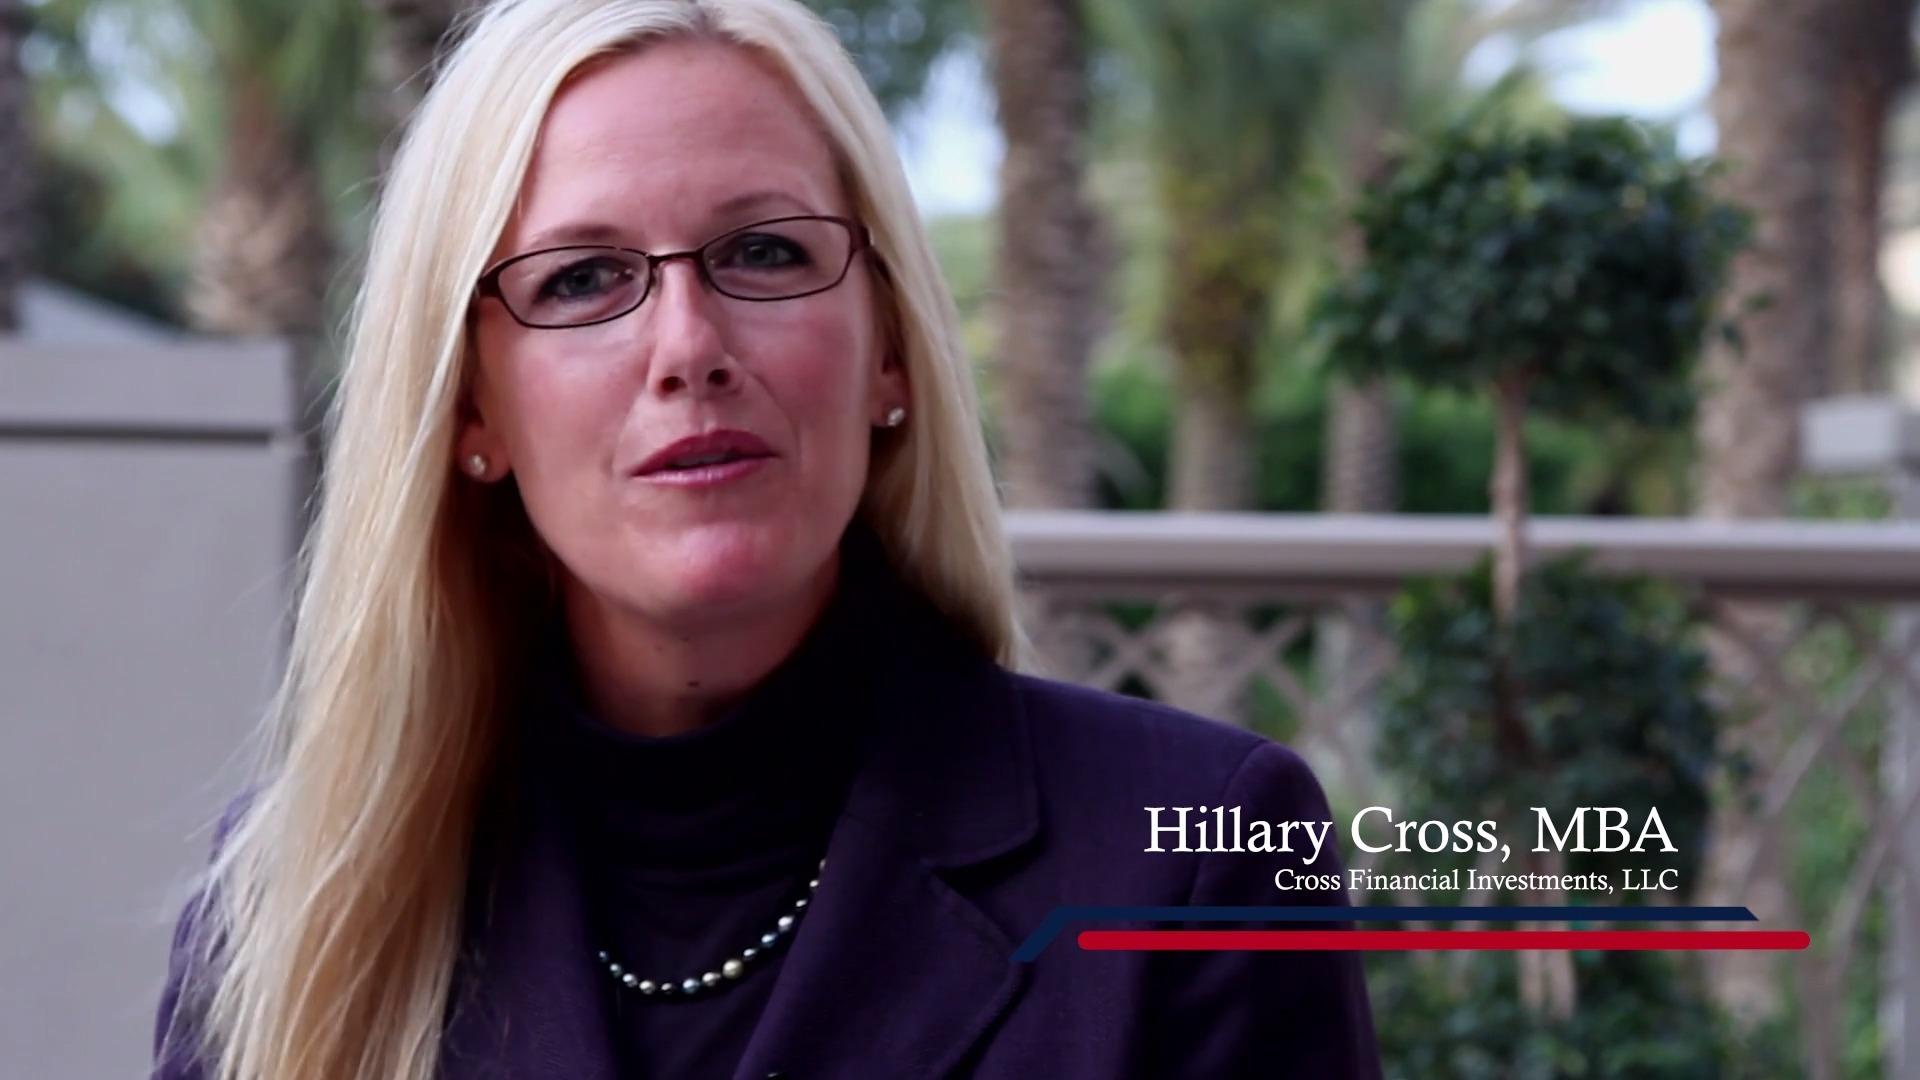 Hillary Cross - Real Independence